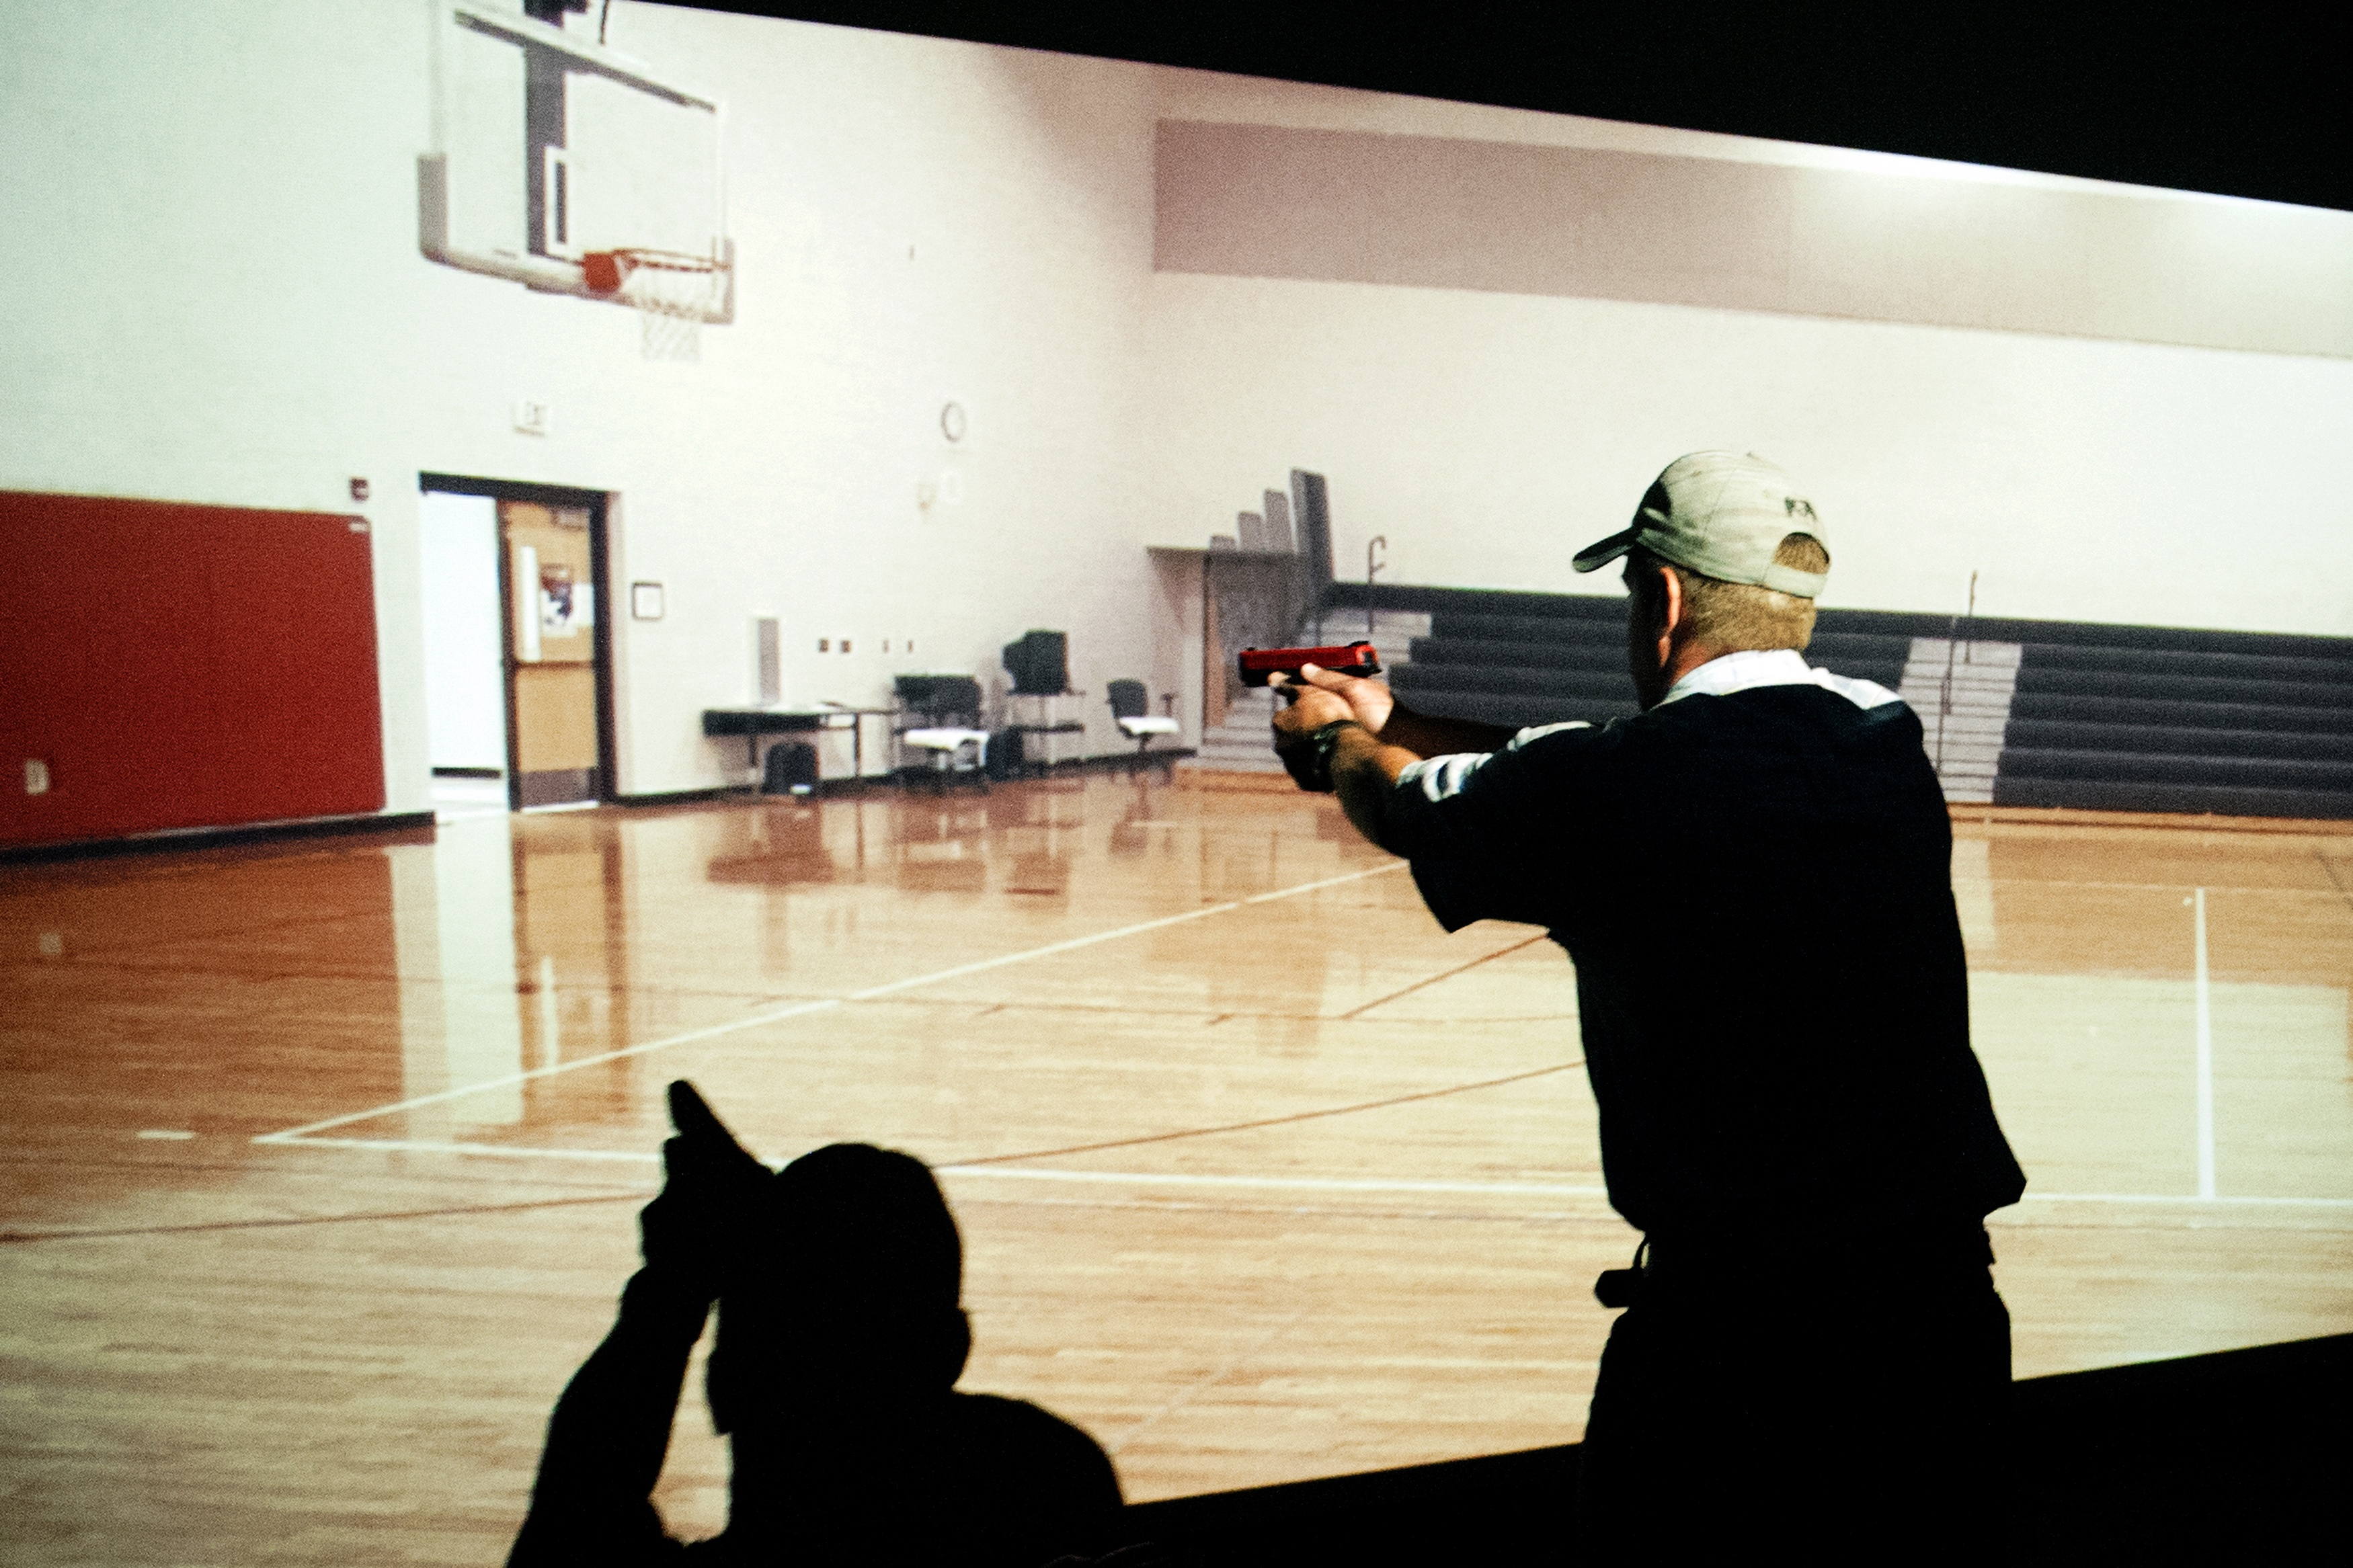 A trainee takes part in a simulated active shooter drill during a three day firearms course for school teachers and administrators sponsored by FASTER Colorado at Flatrock Training Center in Commerce City, Colorado on June 28, 2018. - FASTER Colorado has been sponsoring firearms training to Colorado teachers and administrators since 2017. Over 100 Colorado teachers and administrators have participated in the course. Colorado is one of approximately 30 states that allow firearms within school limits, and an estimated 25 school districts in Colorado allow teachers and administrators to carry concealed firearms. (Photo by JASON CONNOLLY/AFP/Getty Images)